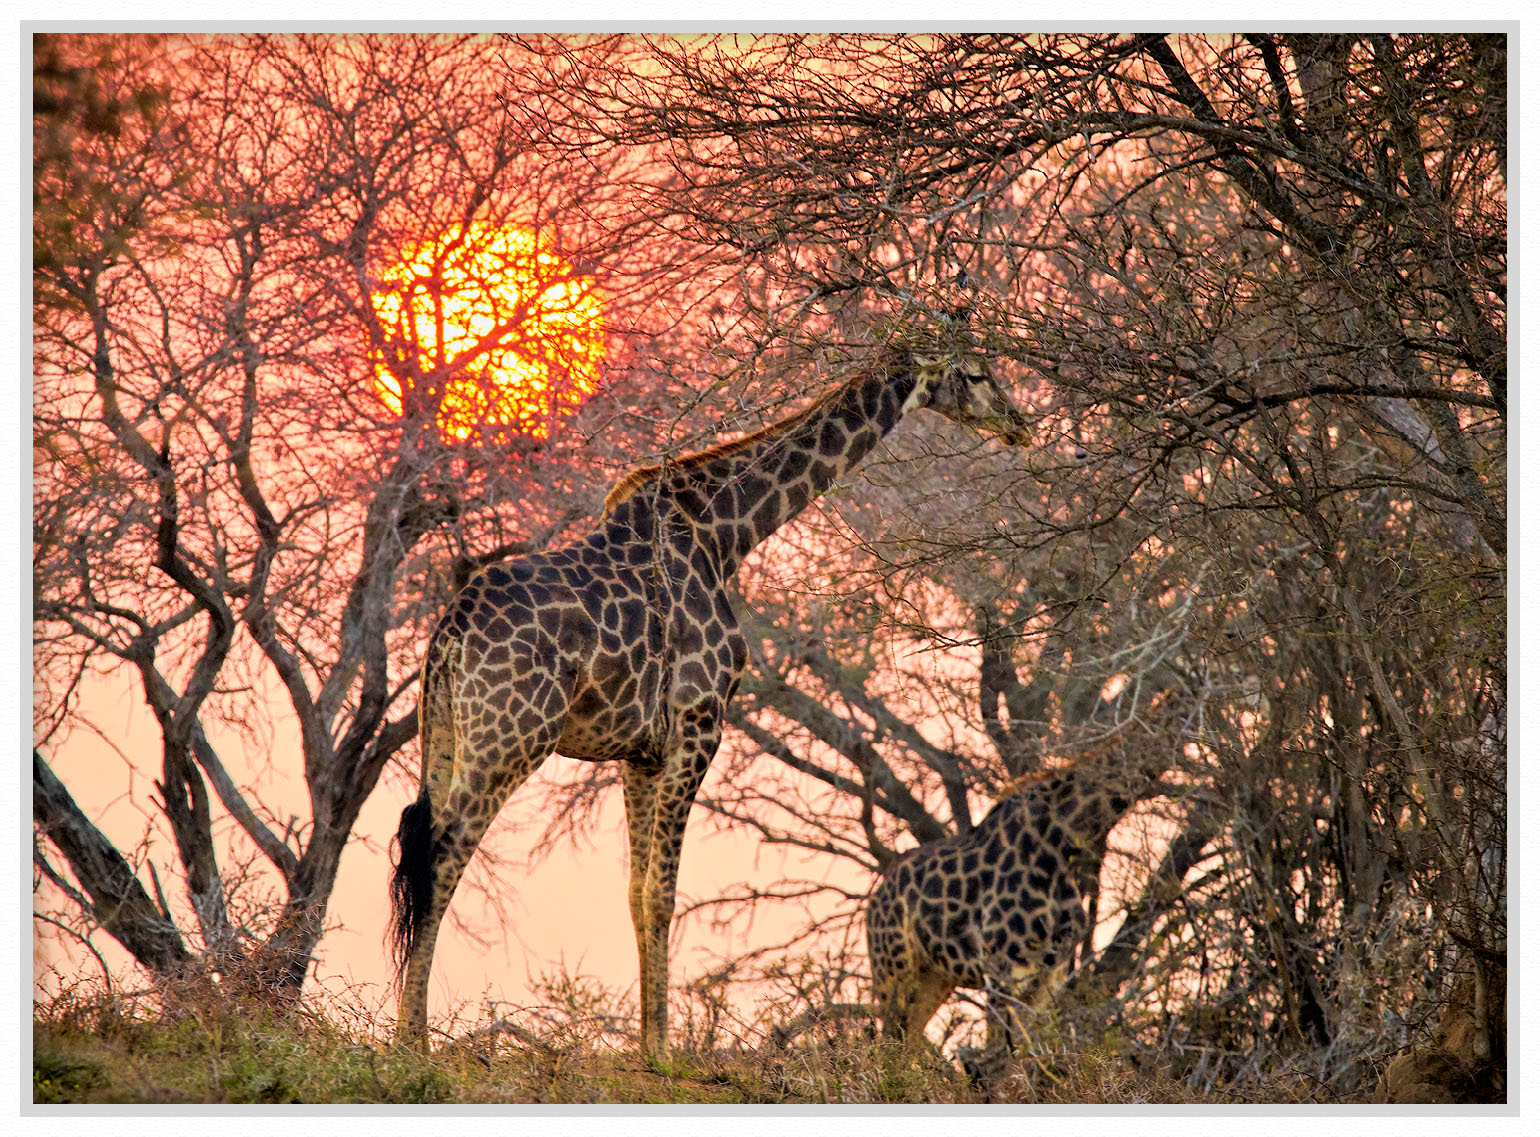 giraffe dawn sunrise iia 1500 framed by GrahamWelland in GrahamWelland